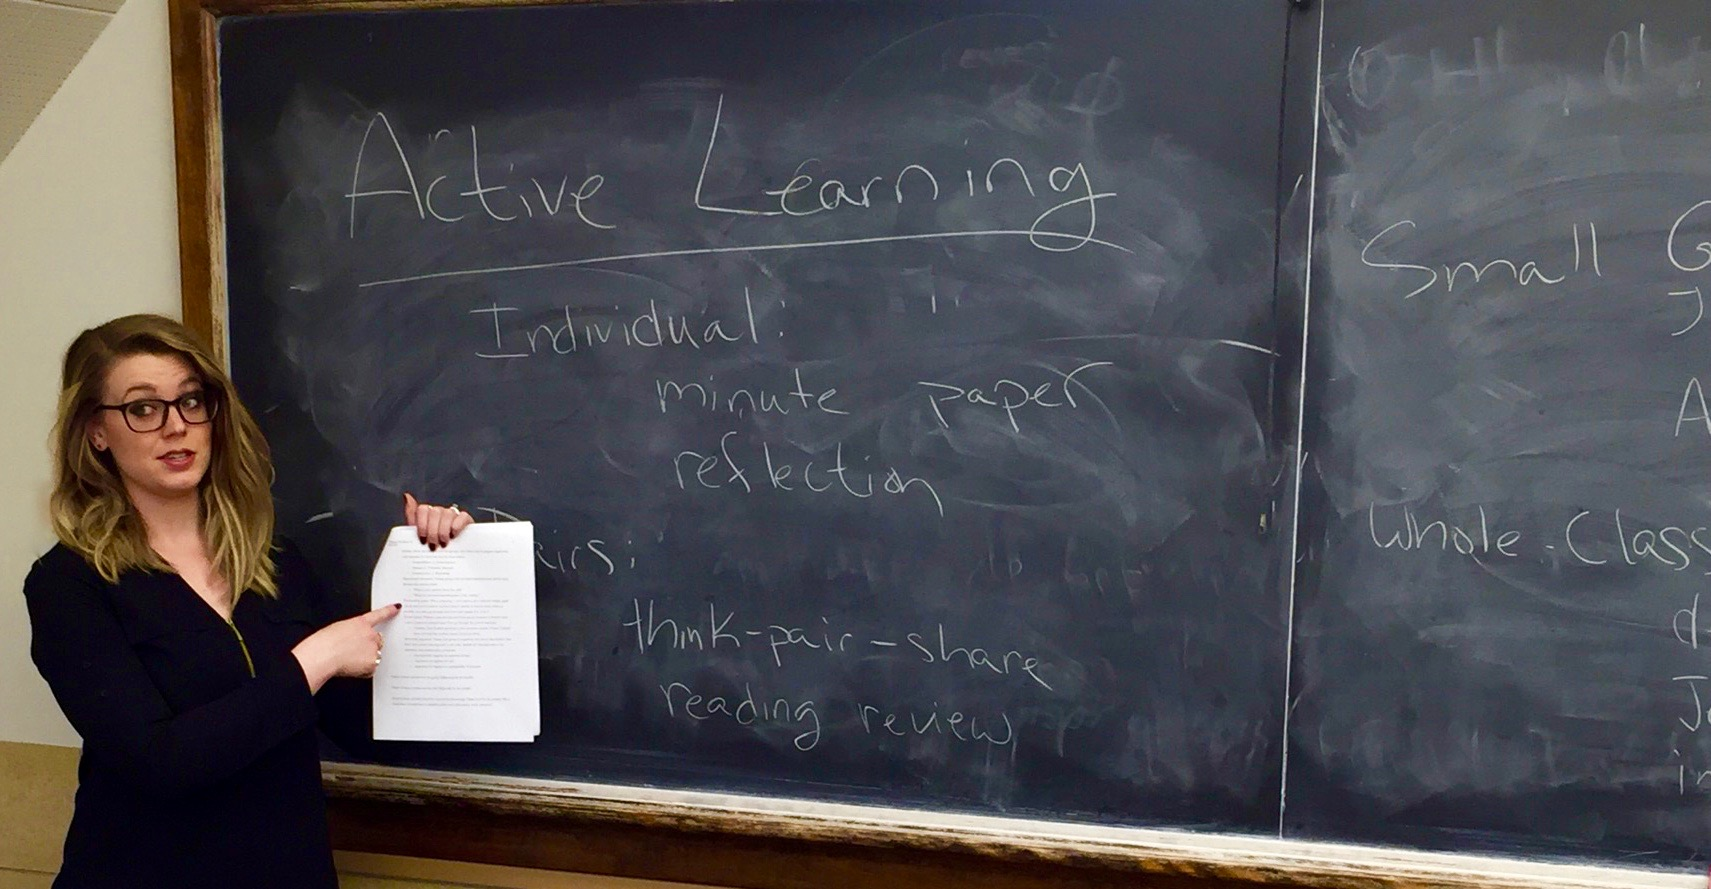 In a pedagogy workshop, we discuss some active learning strategies that are designed to help students engage with and manipulate the material on their own to enhance their understanding.